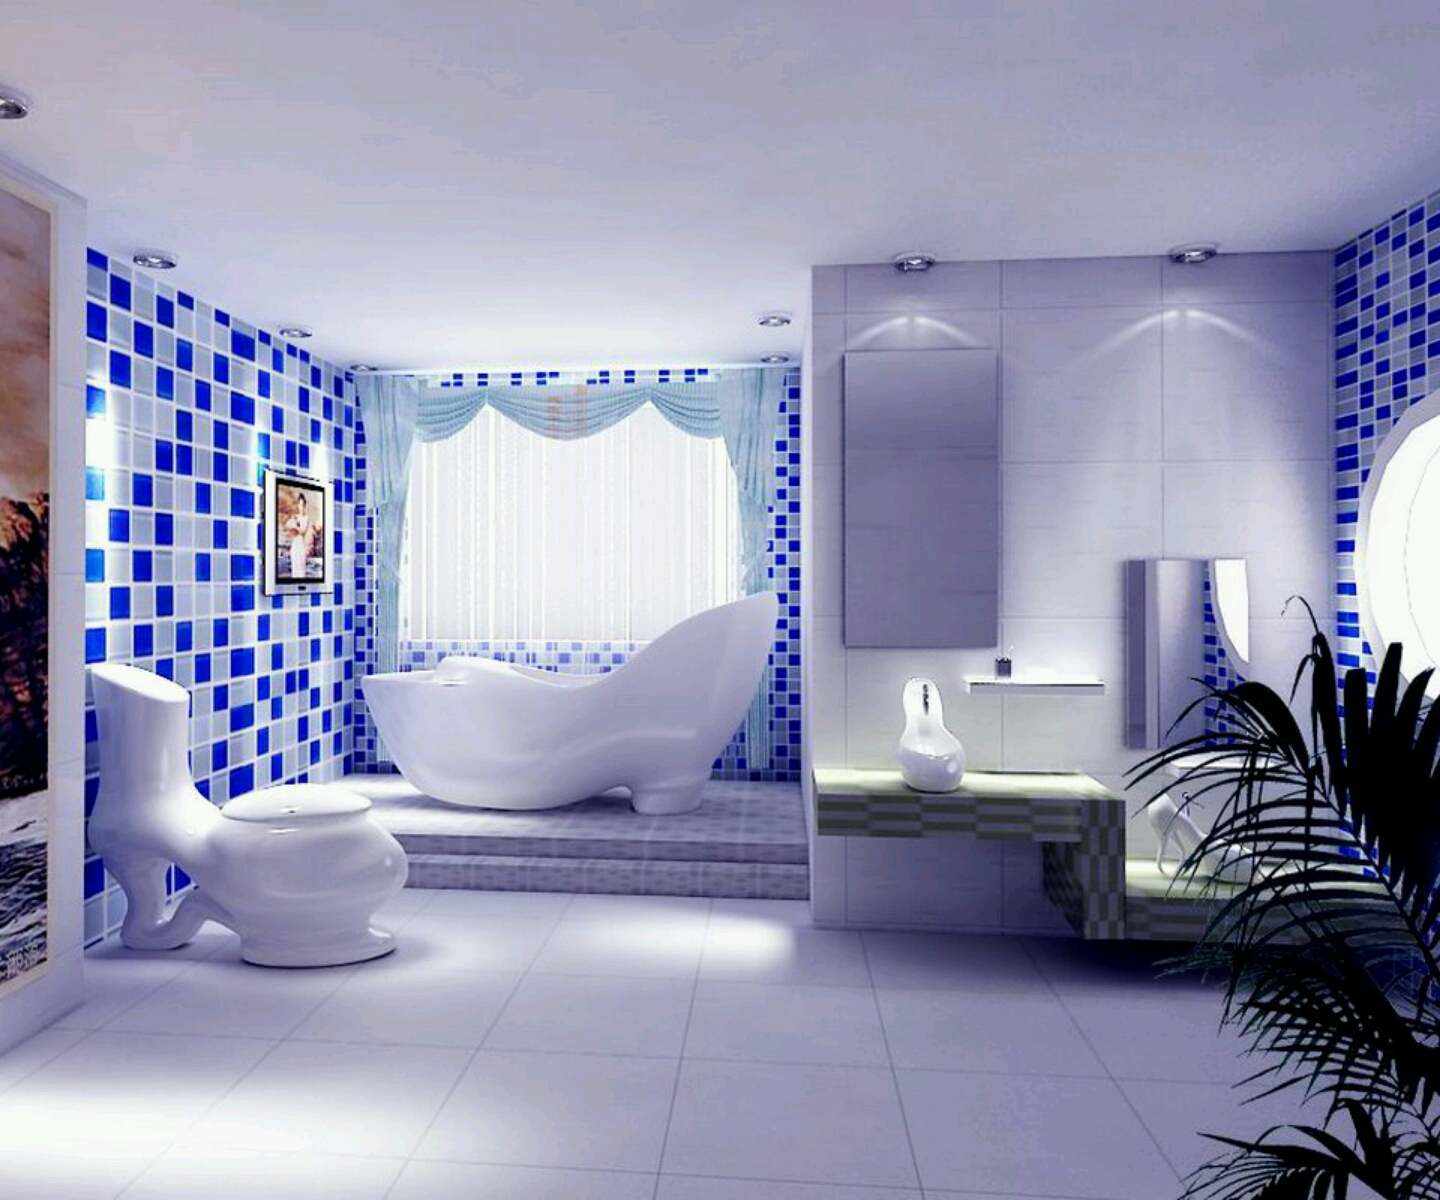 New home designs latest ultra modern washroom designs ideas for Stylish home design ideas